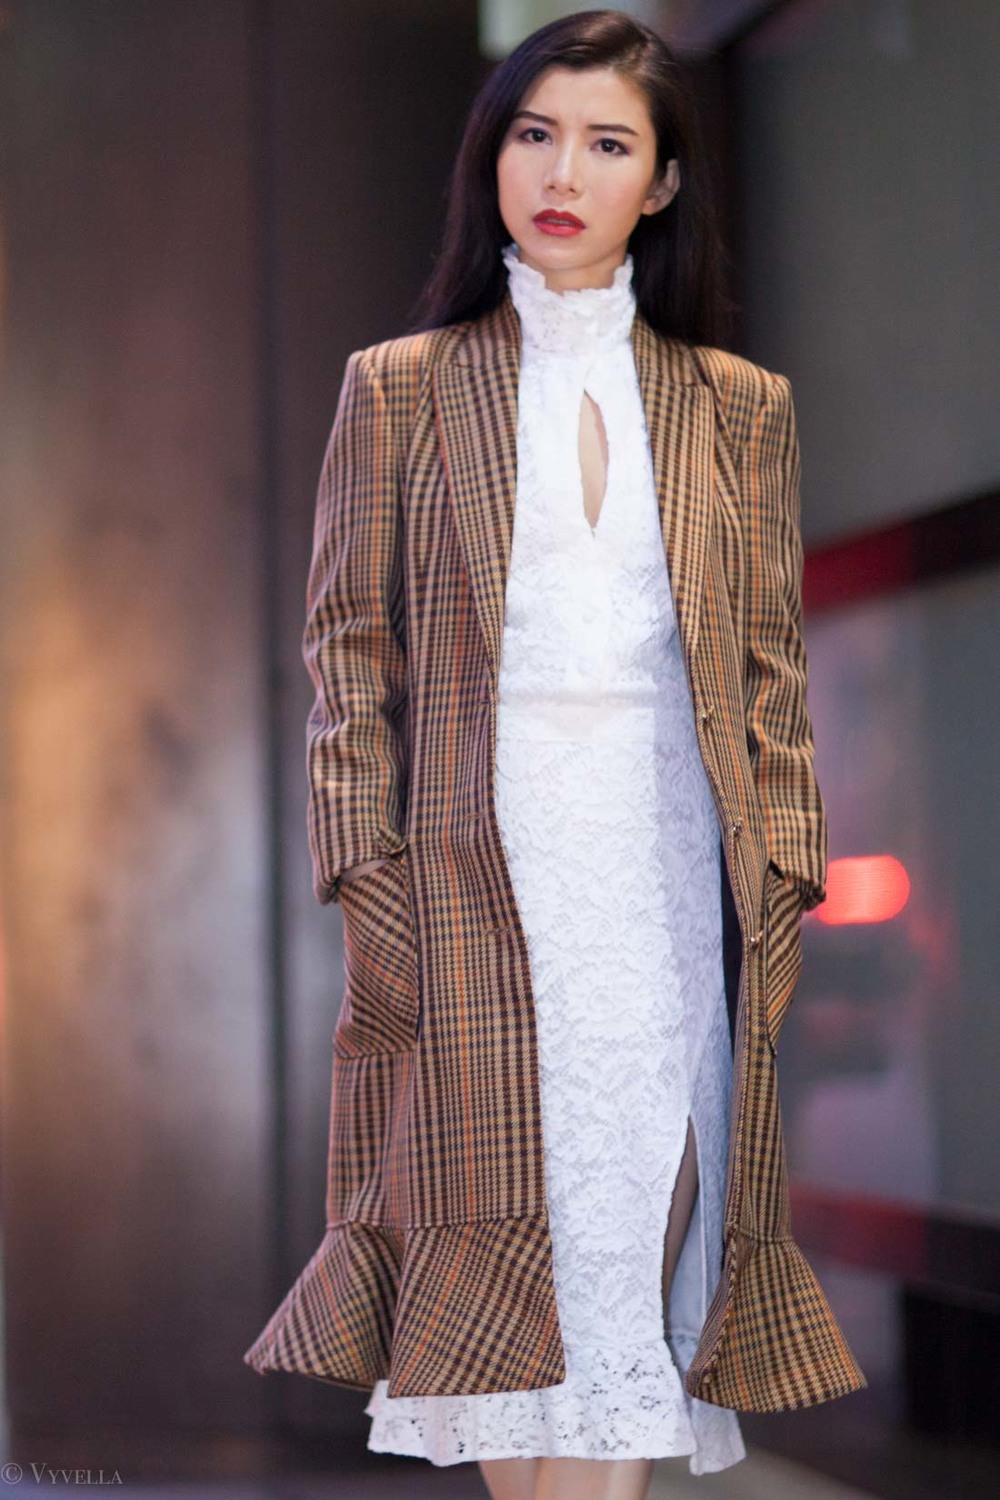 looks_vintage-lace-and-houndstooth-coat_02.jpg